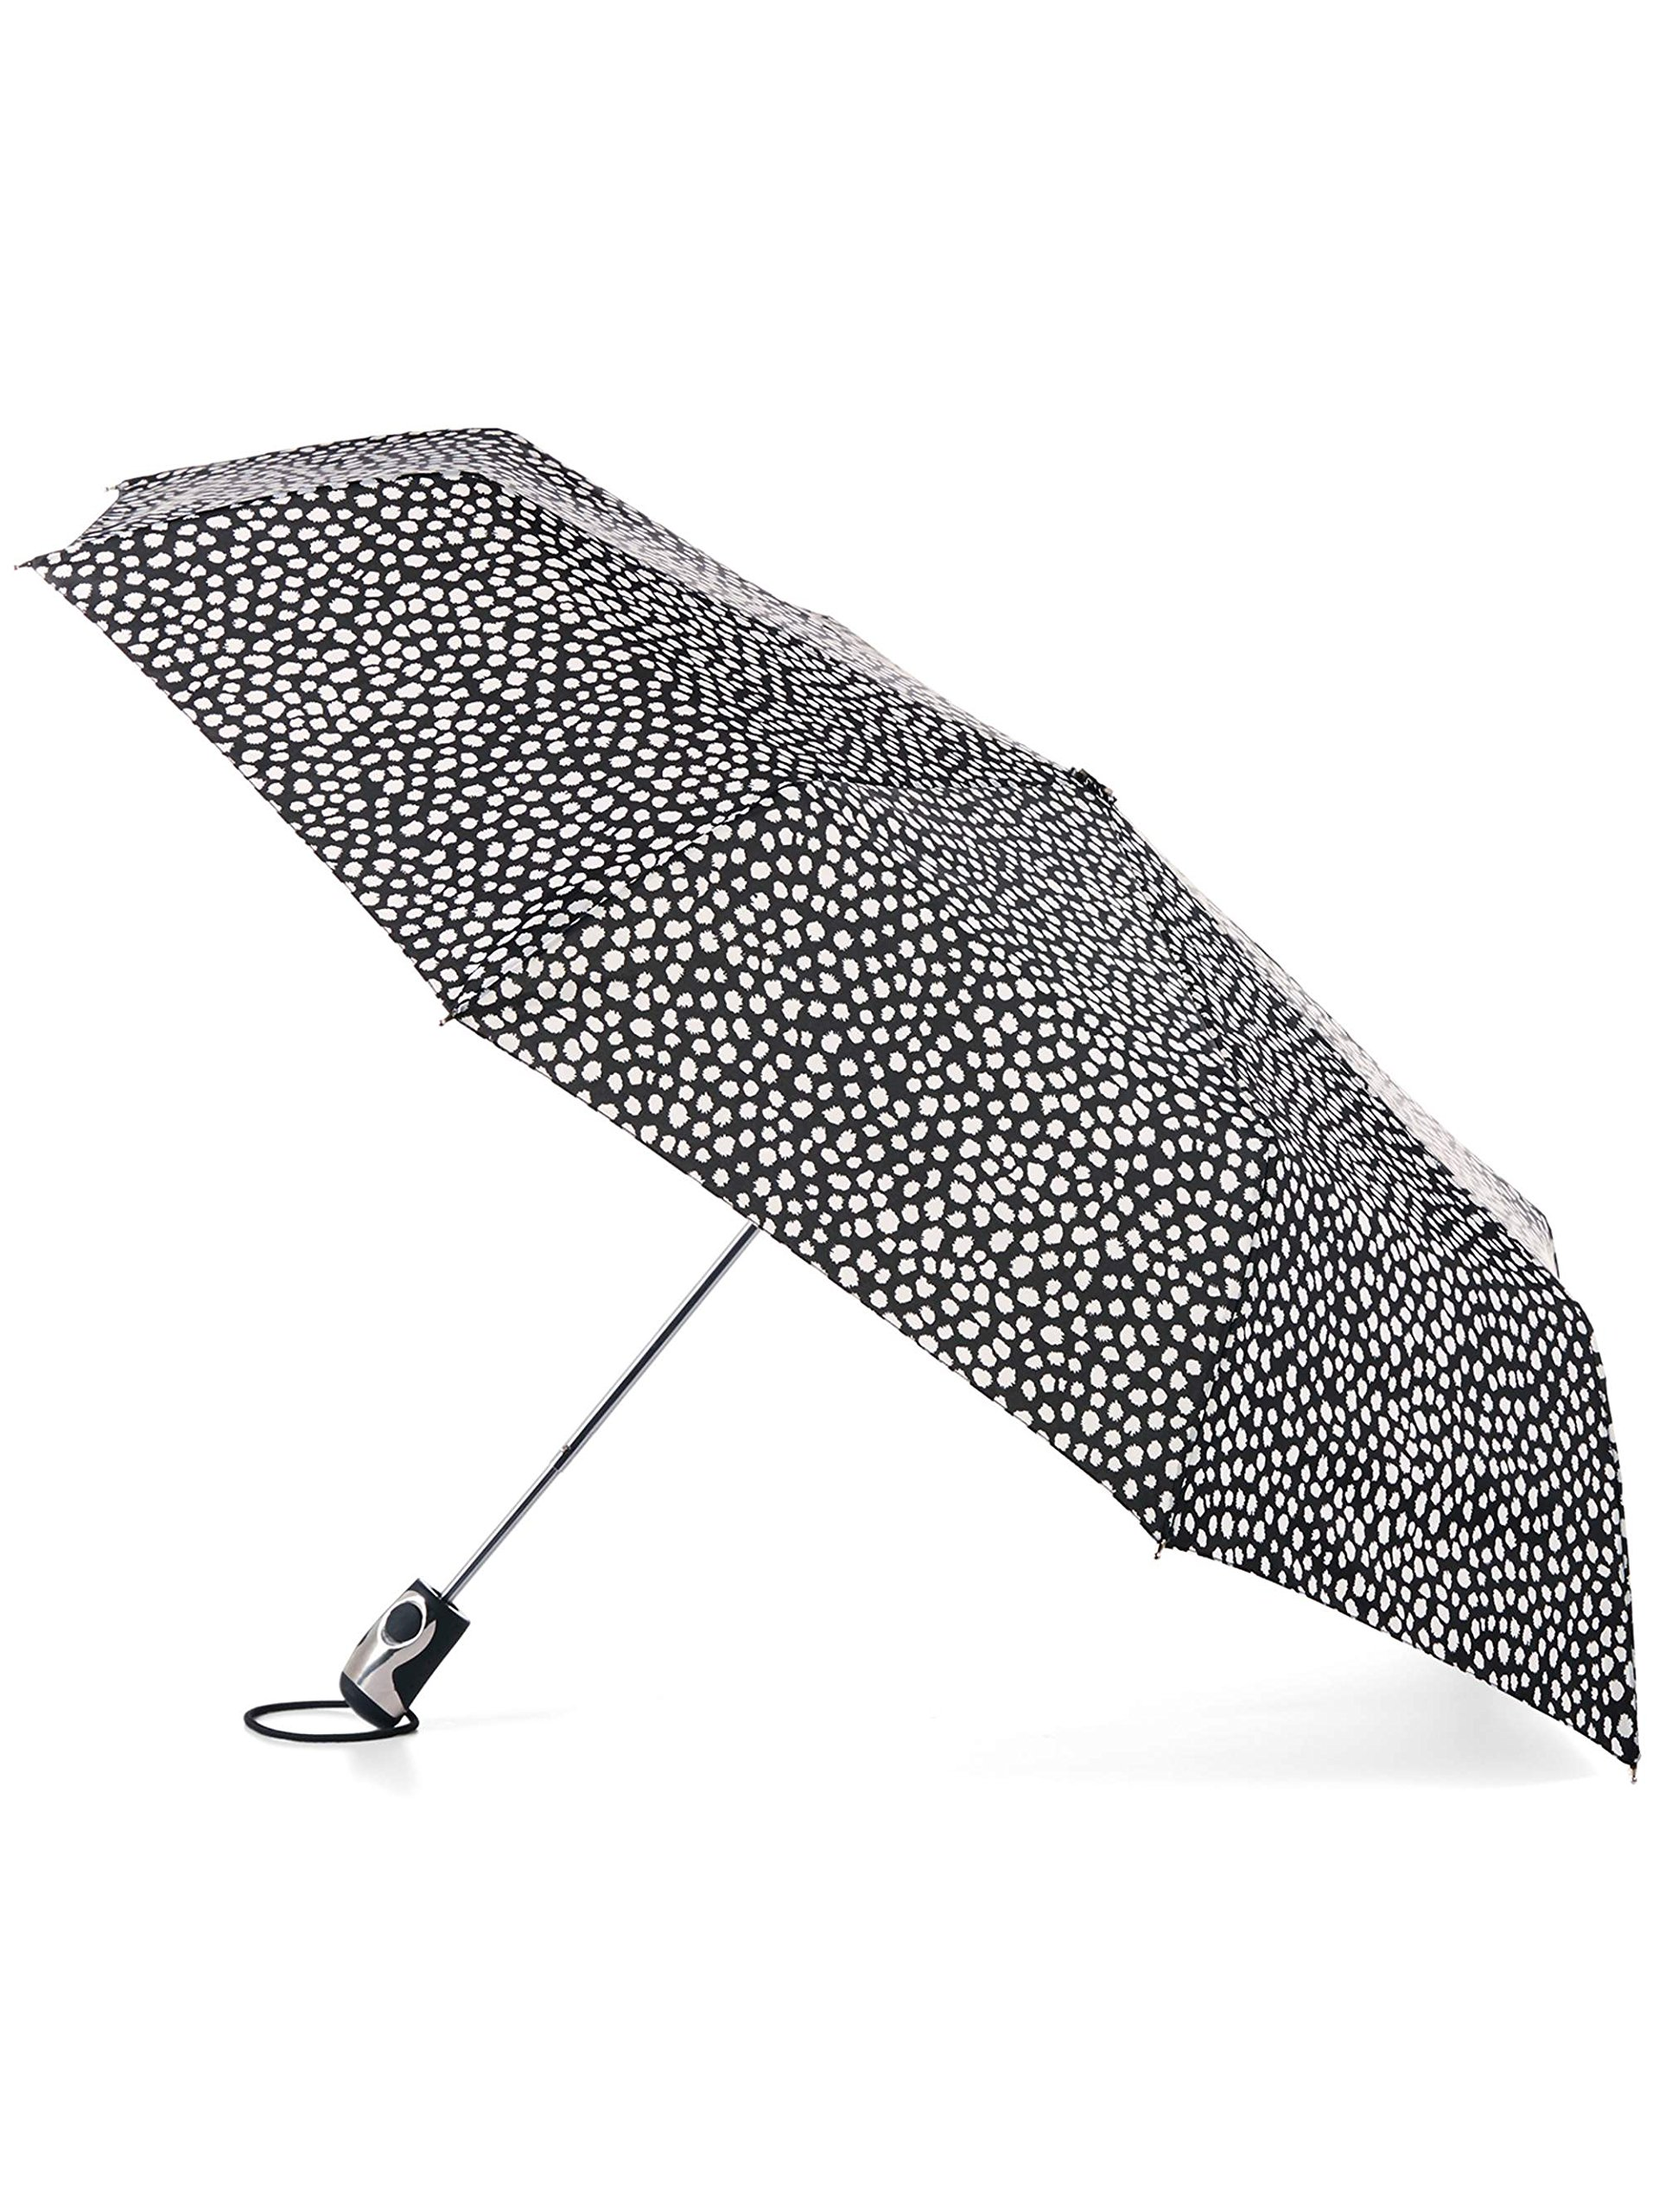 Totes Titan Auto Open Umbrella with NeverWet Technology, Black With Splattered White Dots.